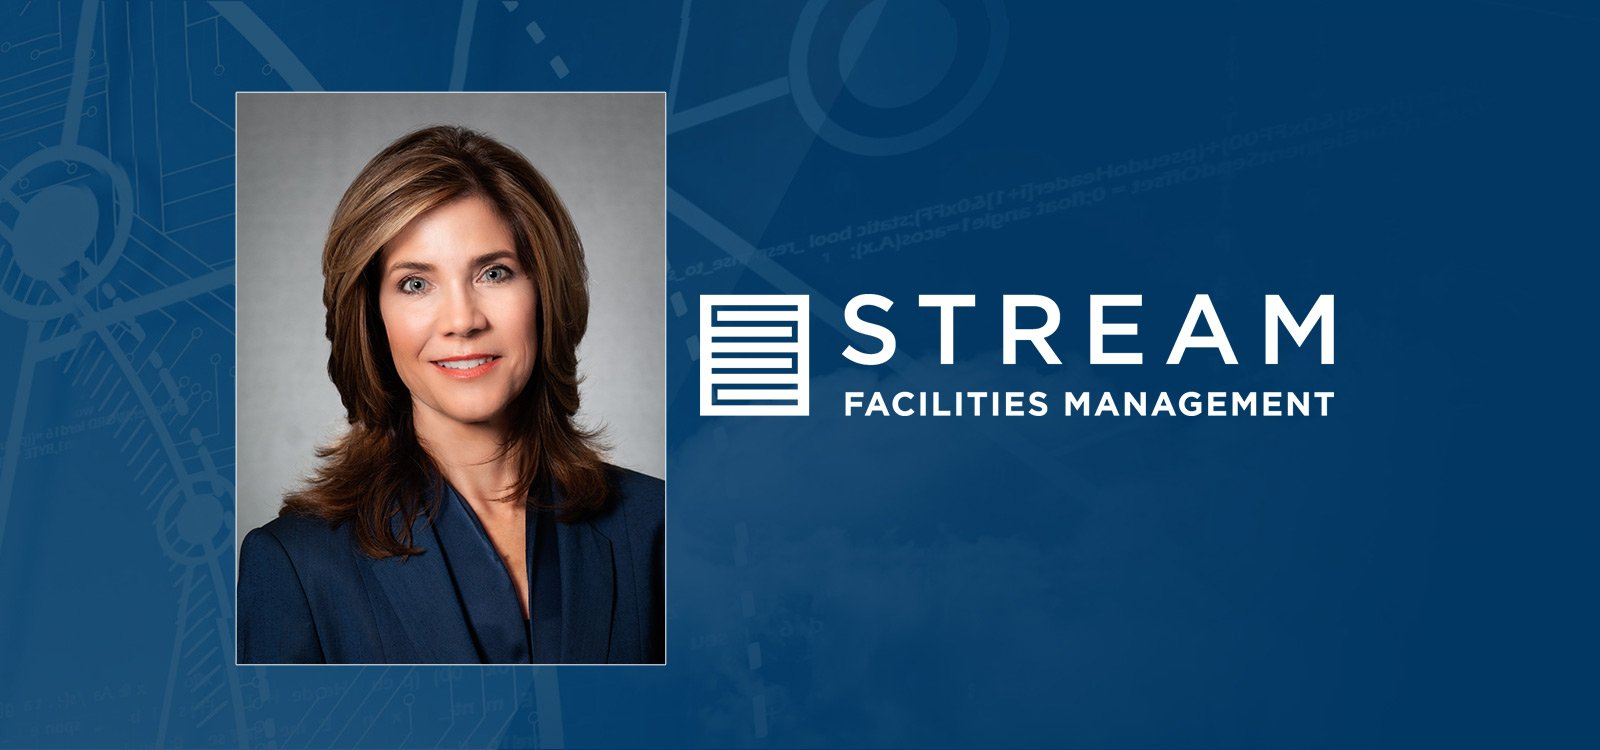 Stream Facilities Management Sales to be Led by Simone Walzel